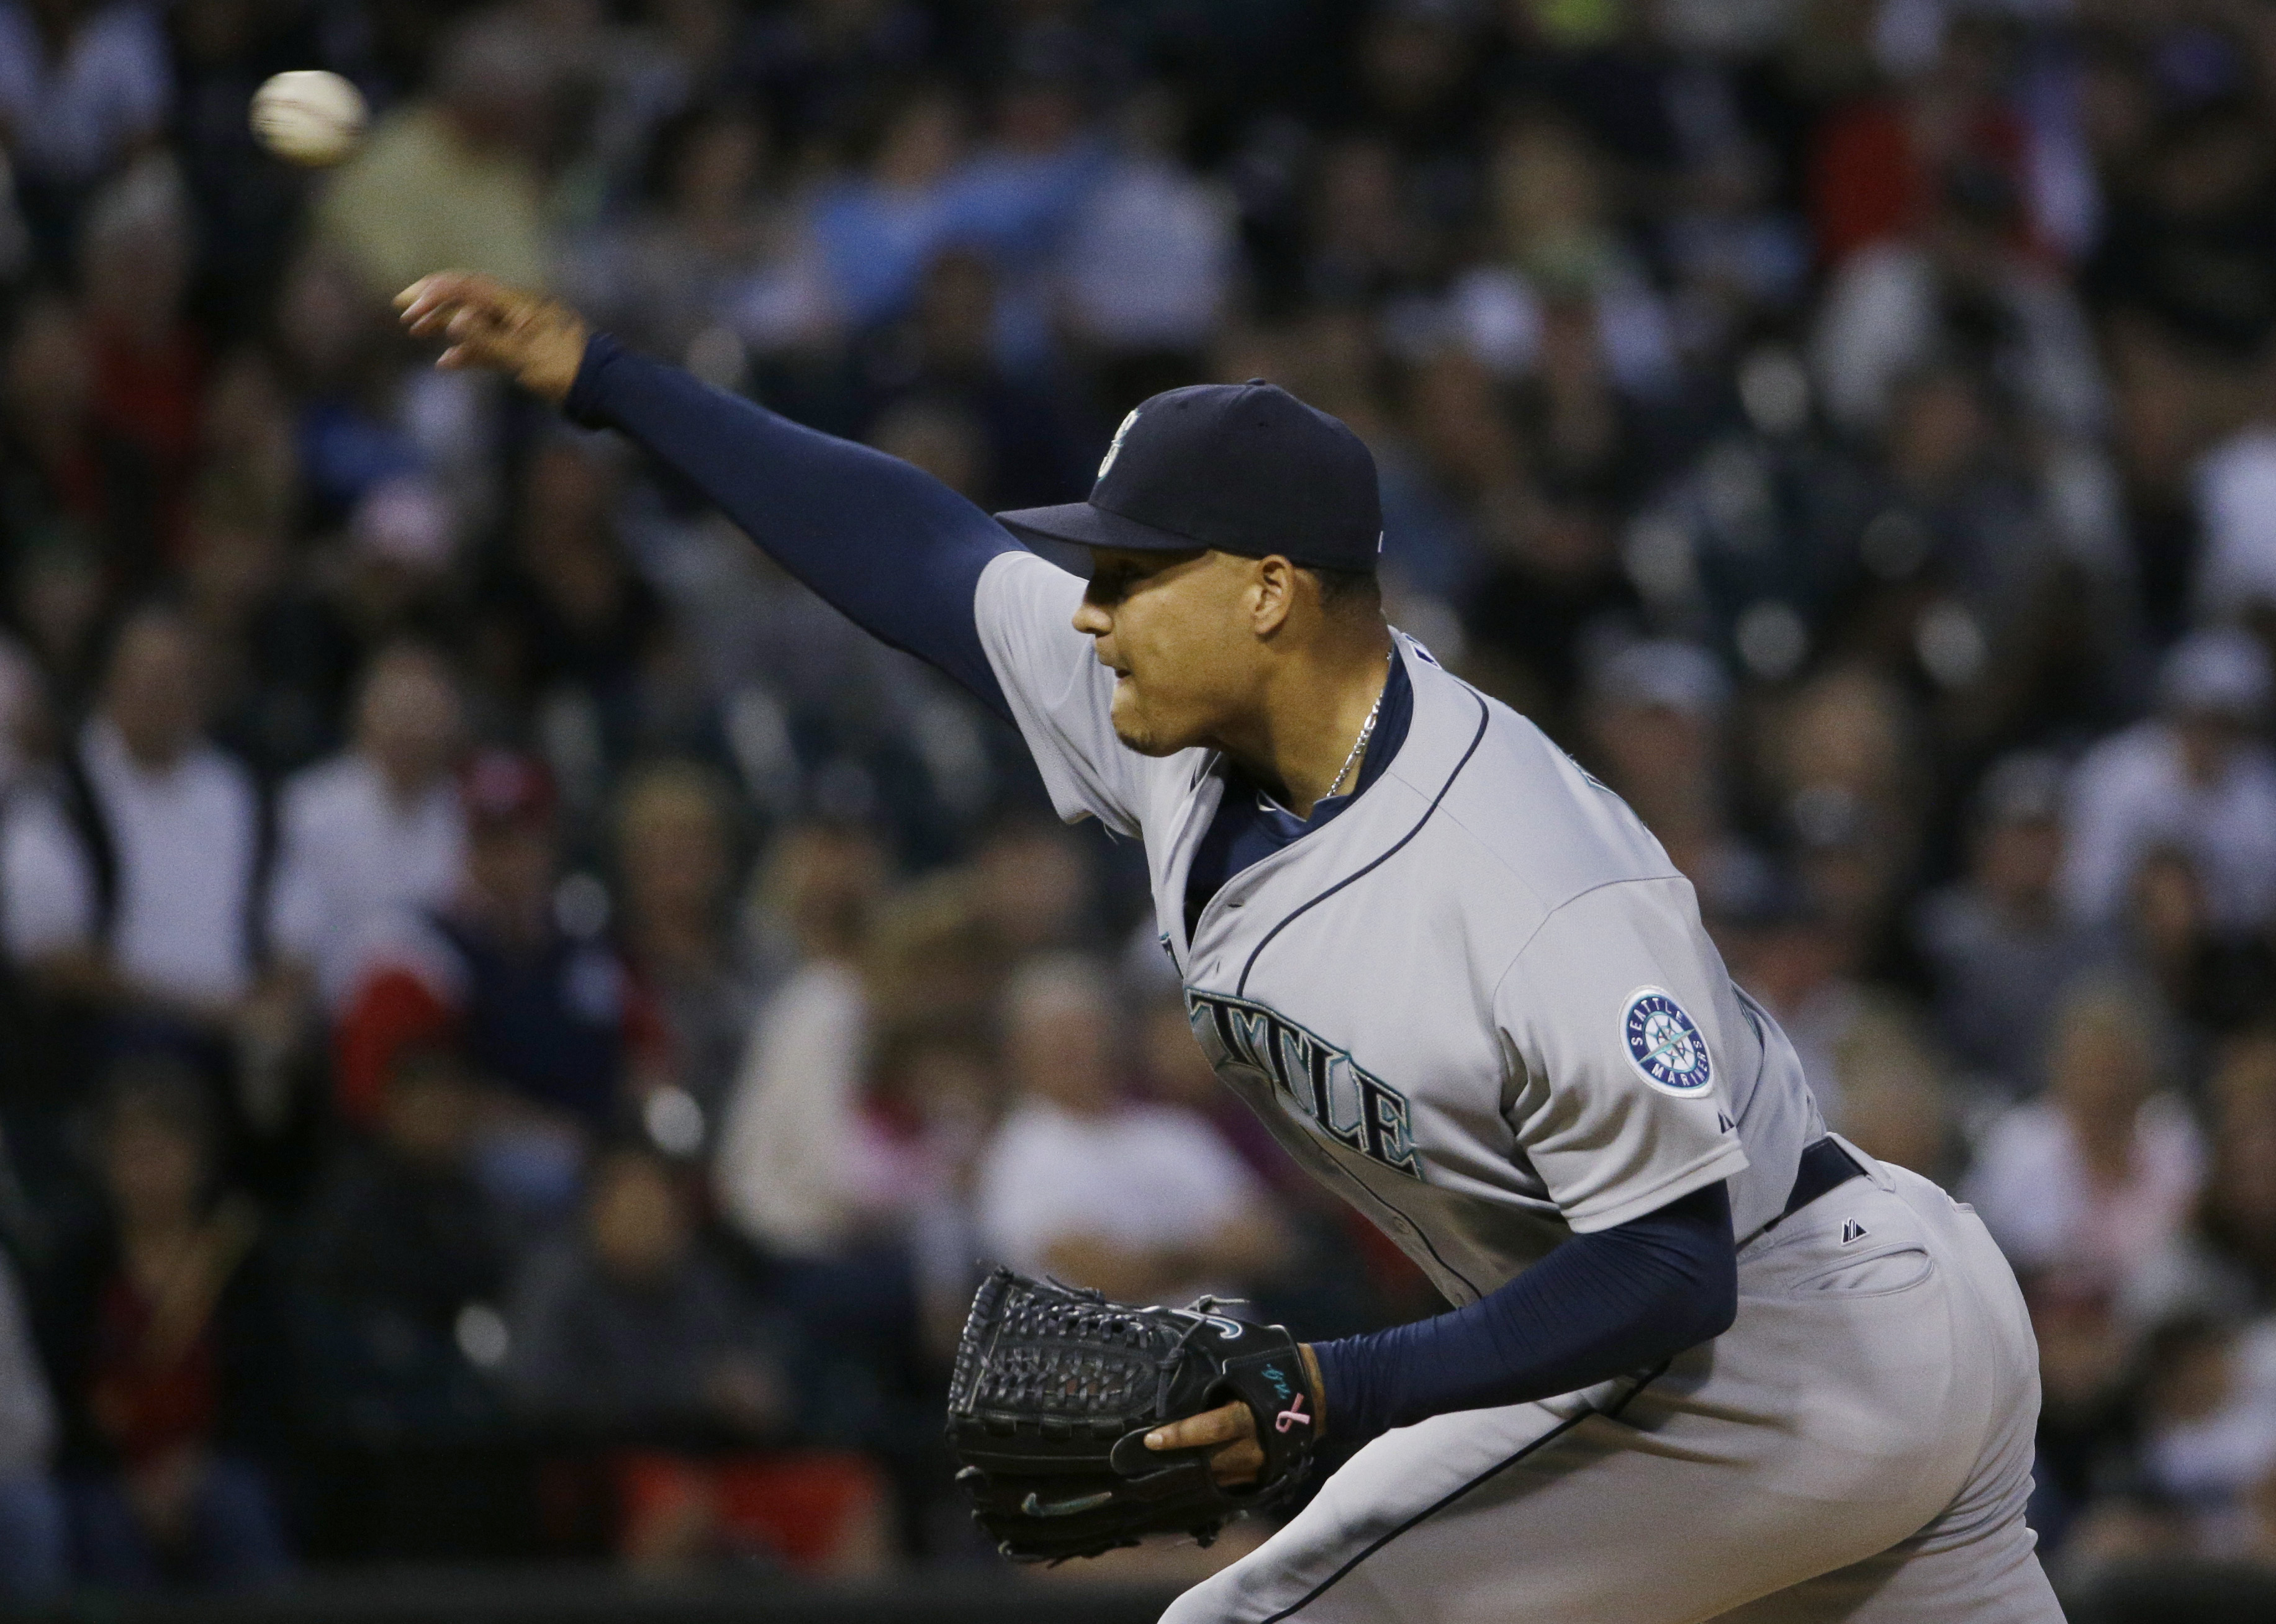 Seattle Mariners starter Taijuan Walker throws against the Chicago White Sox during the first inning of a baseball game Friday, Aug. 28, 2015, in Chicago. (AP Photo/Nam Y. Huh)